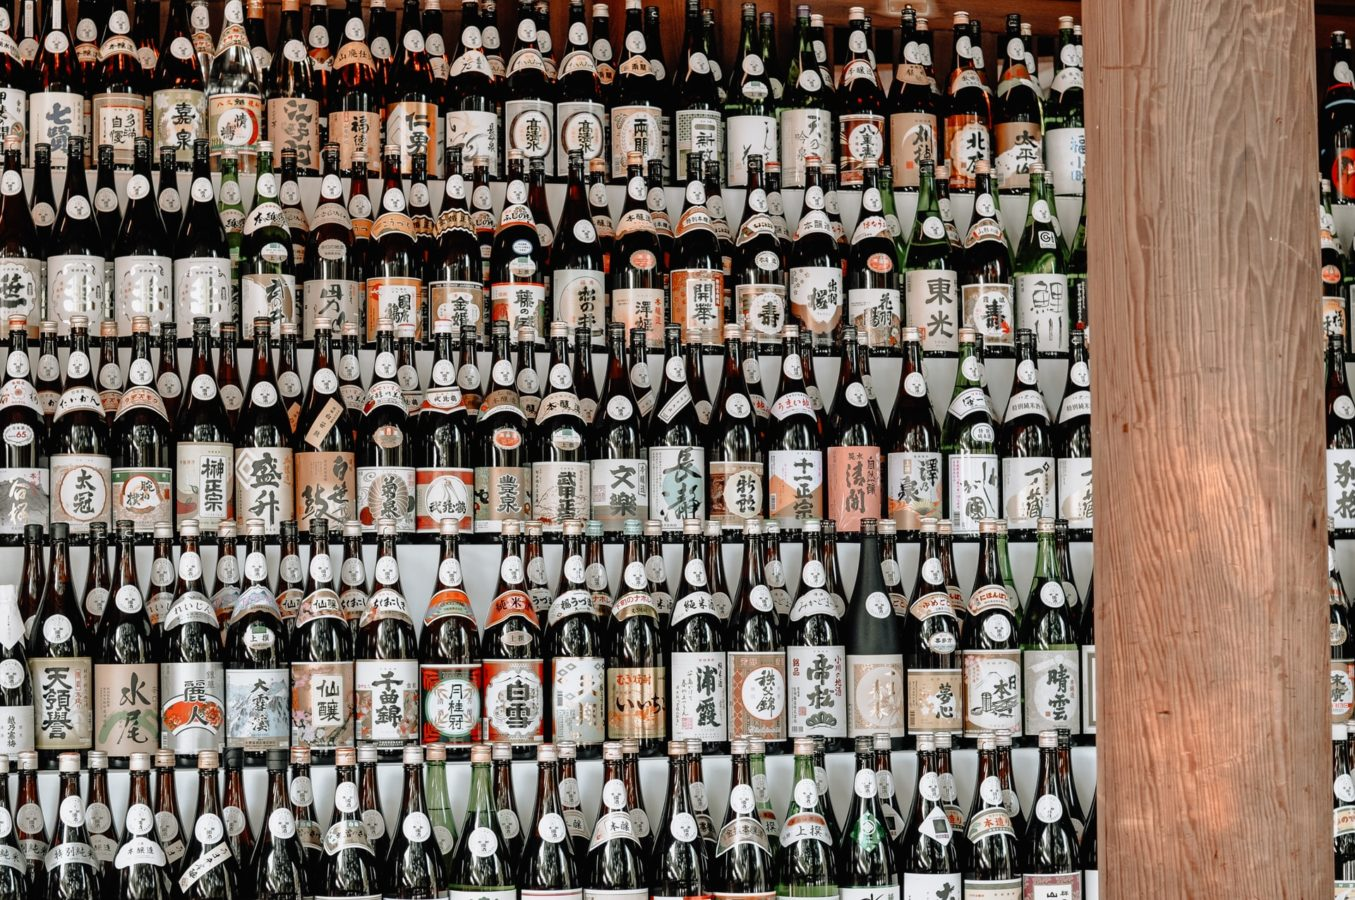 Vegan sake is a thing and it's spectacular